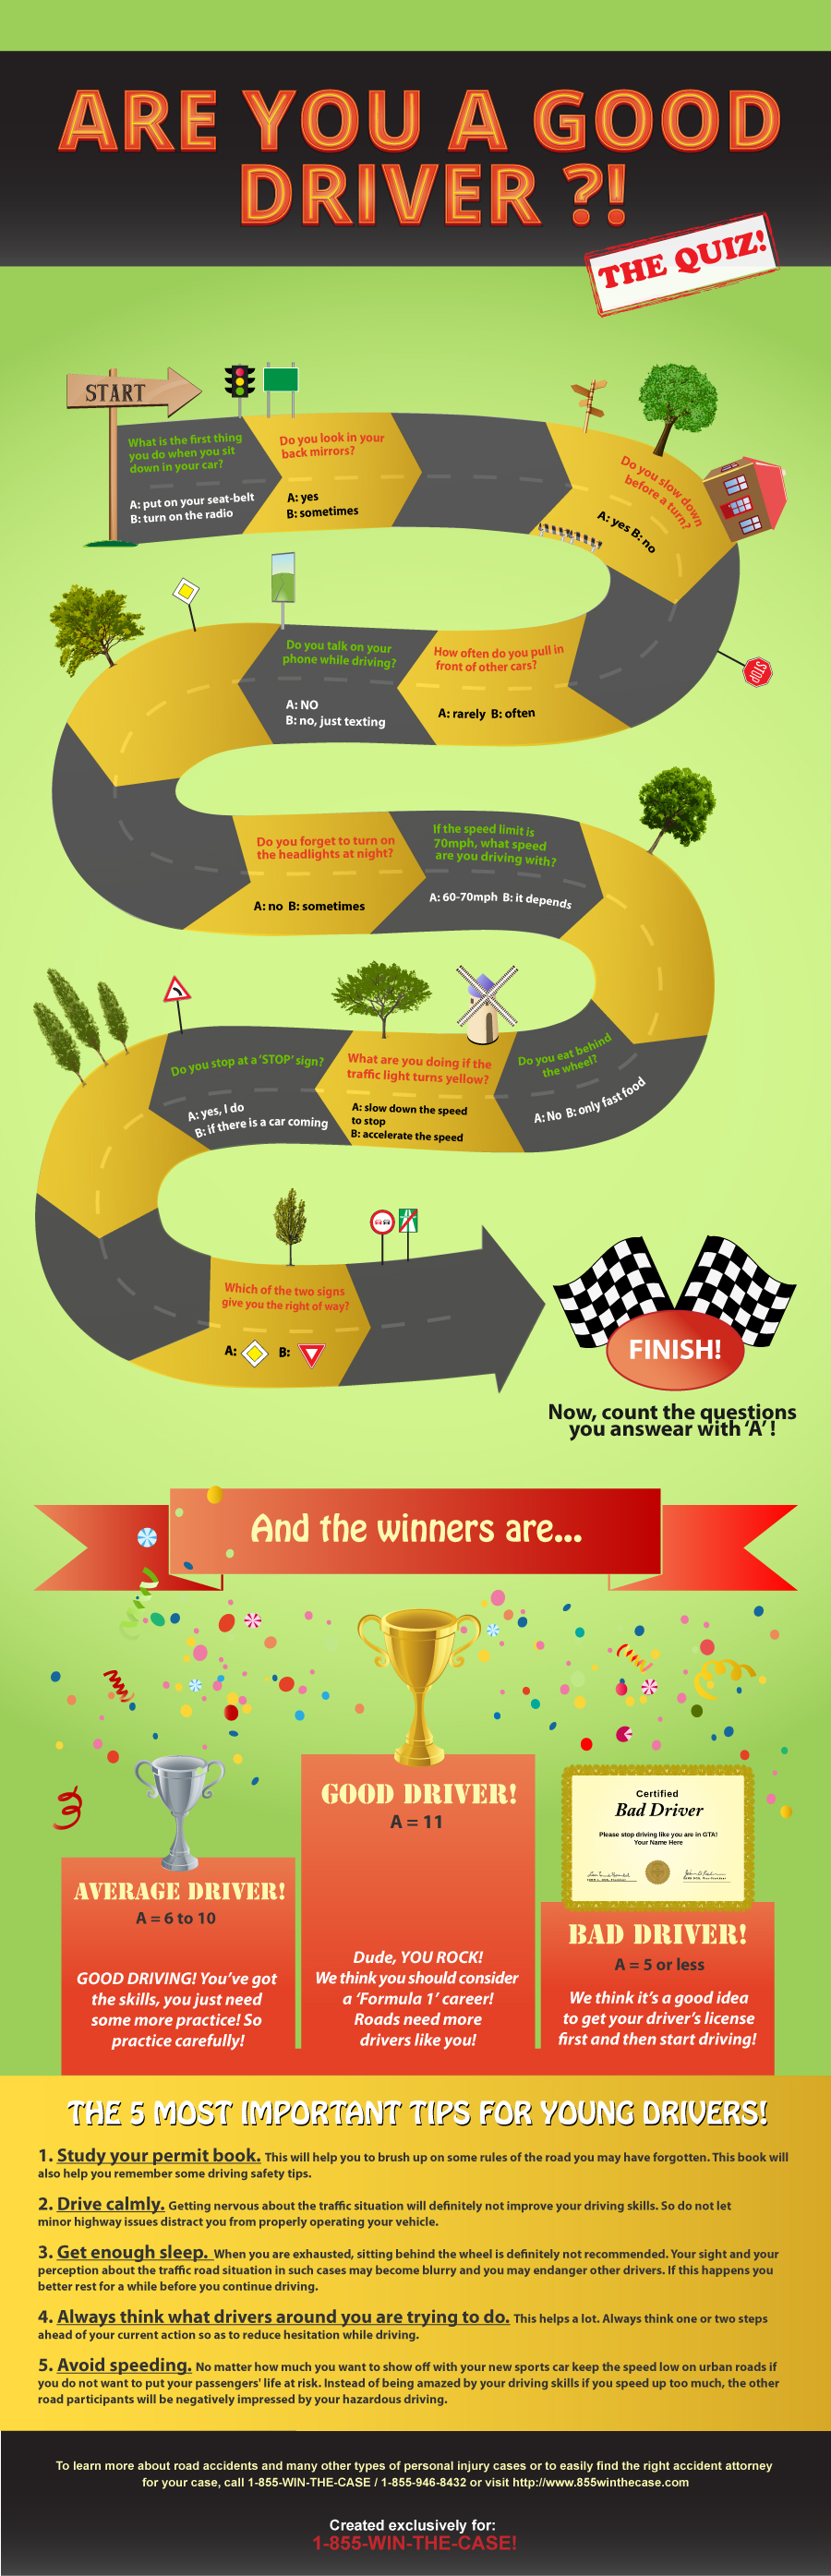 Young Drivers Tips-Infographic